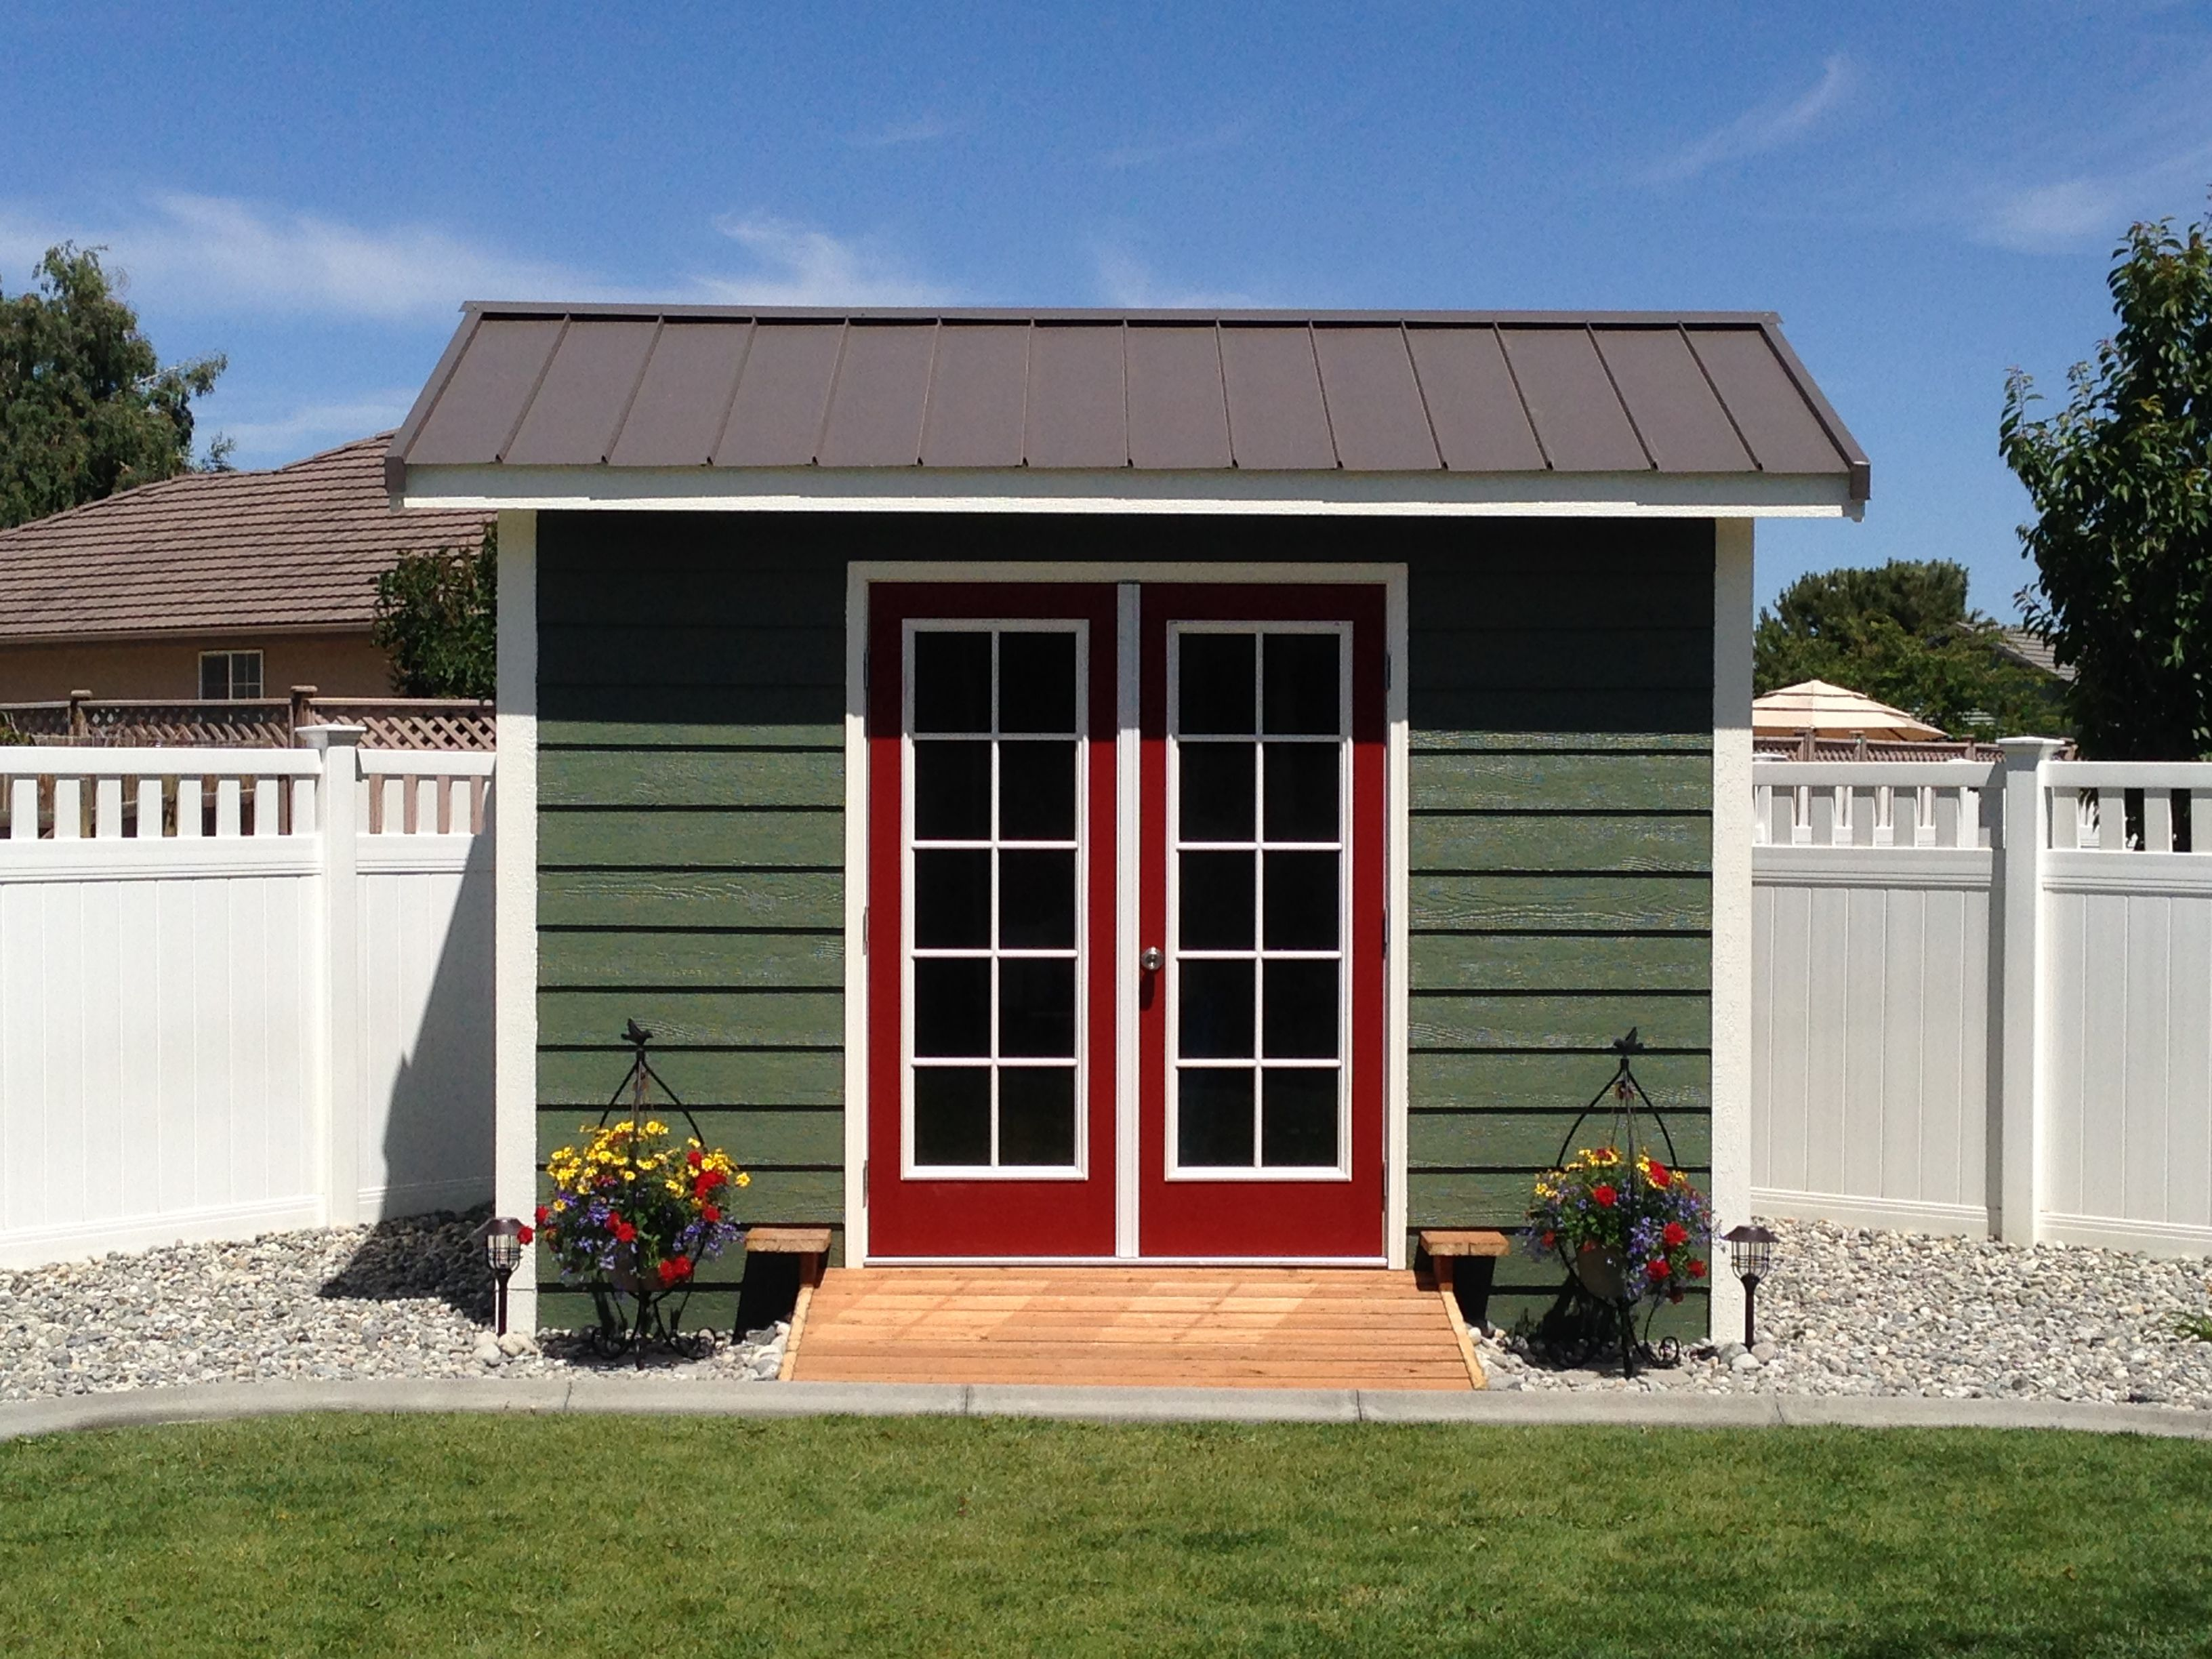 Custom Built Garden Shed Mother In Law Home Playhouse Cabin Office Studio Barn She Man Cave